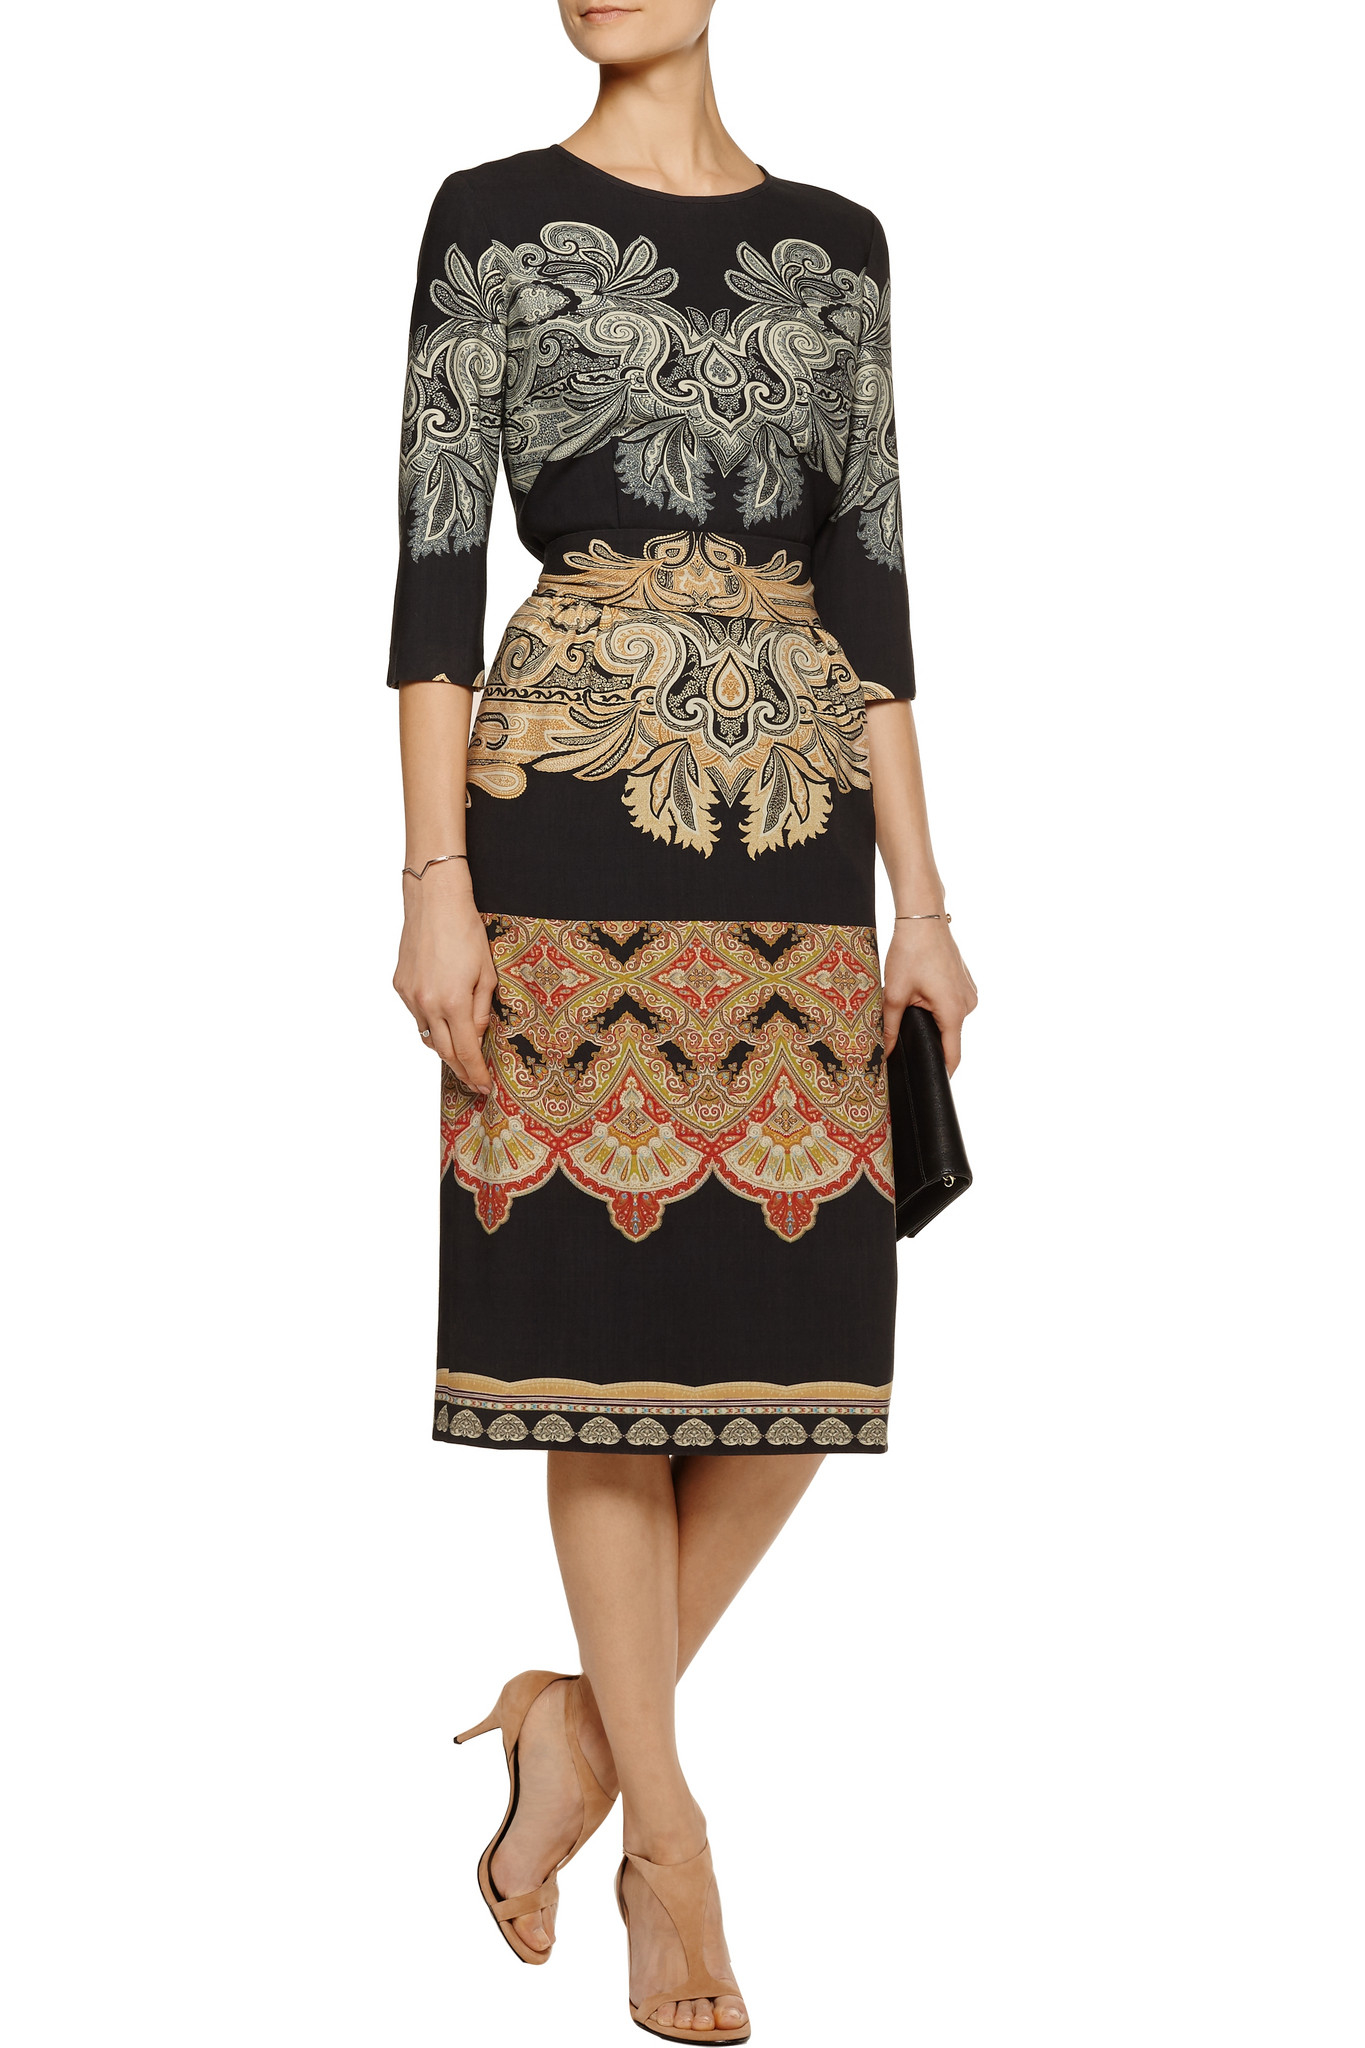 Etro printed belted dress Free Shipping View Cheap Price Outlet Sale Cheap Sale Affordable 100% Guaranteed Online EkSjiJLl